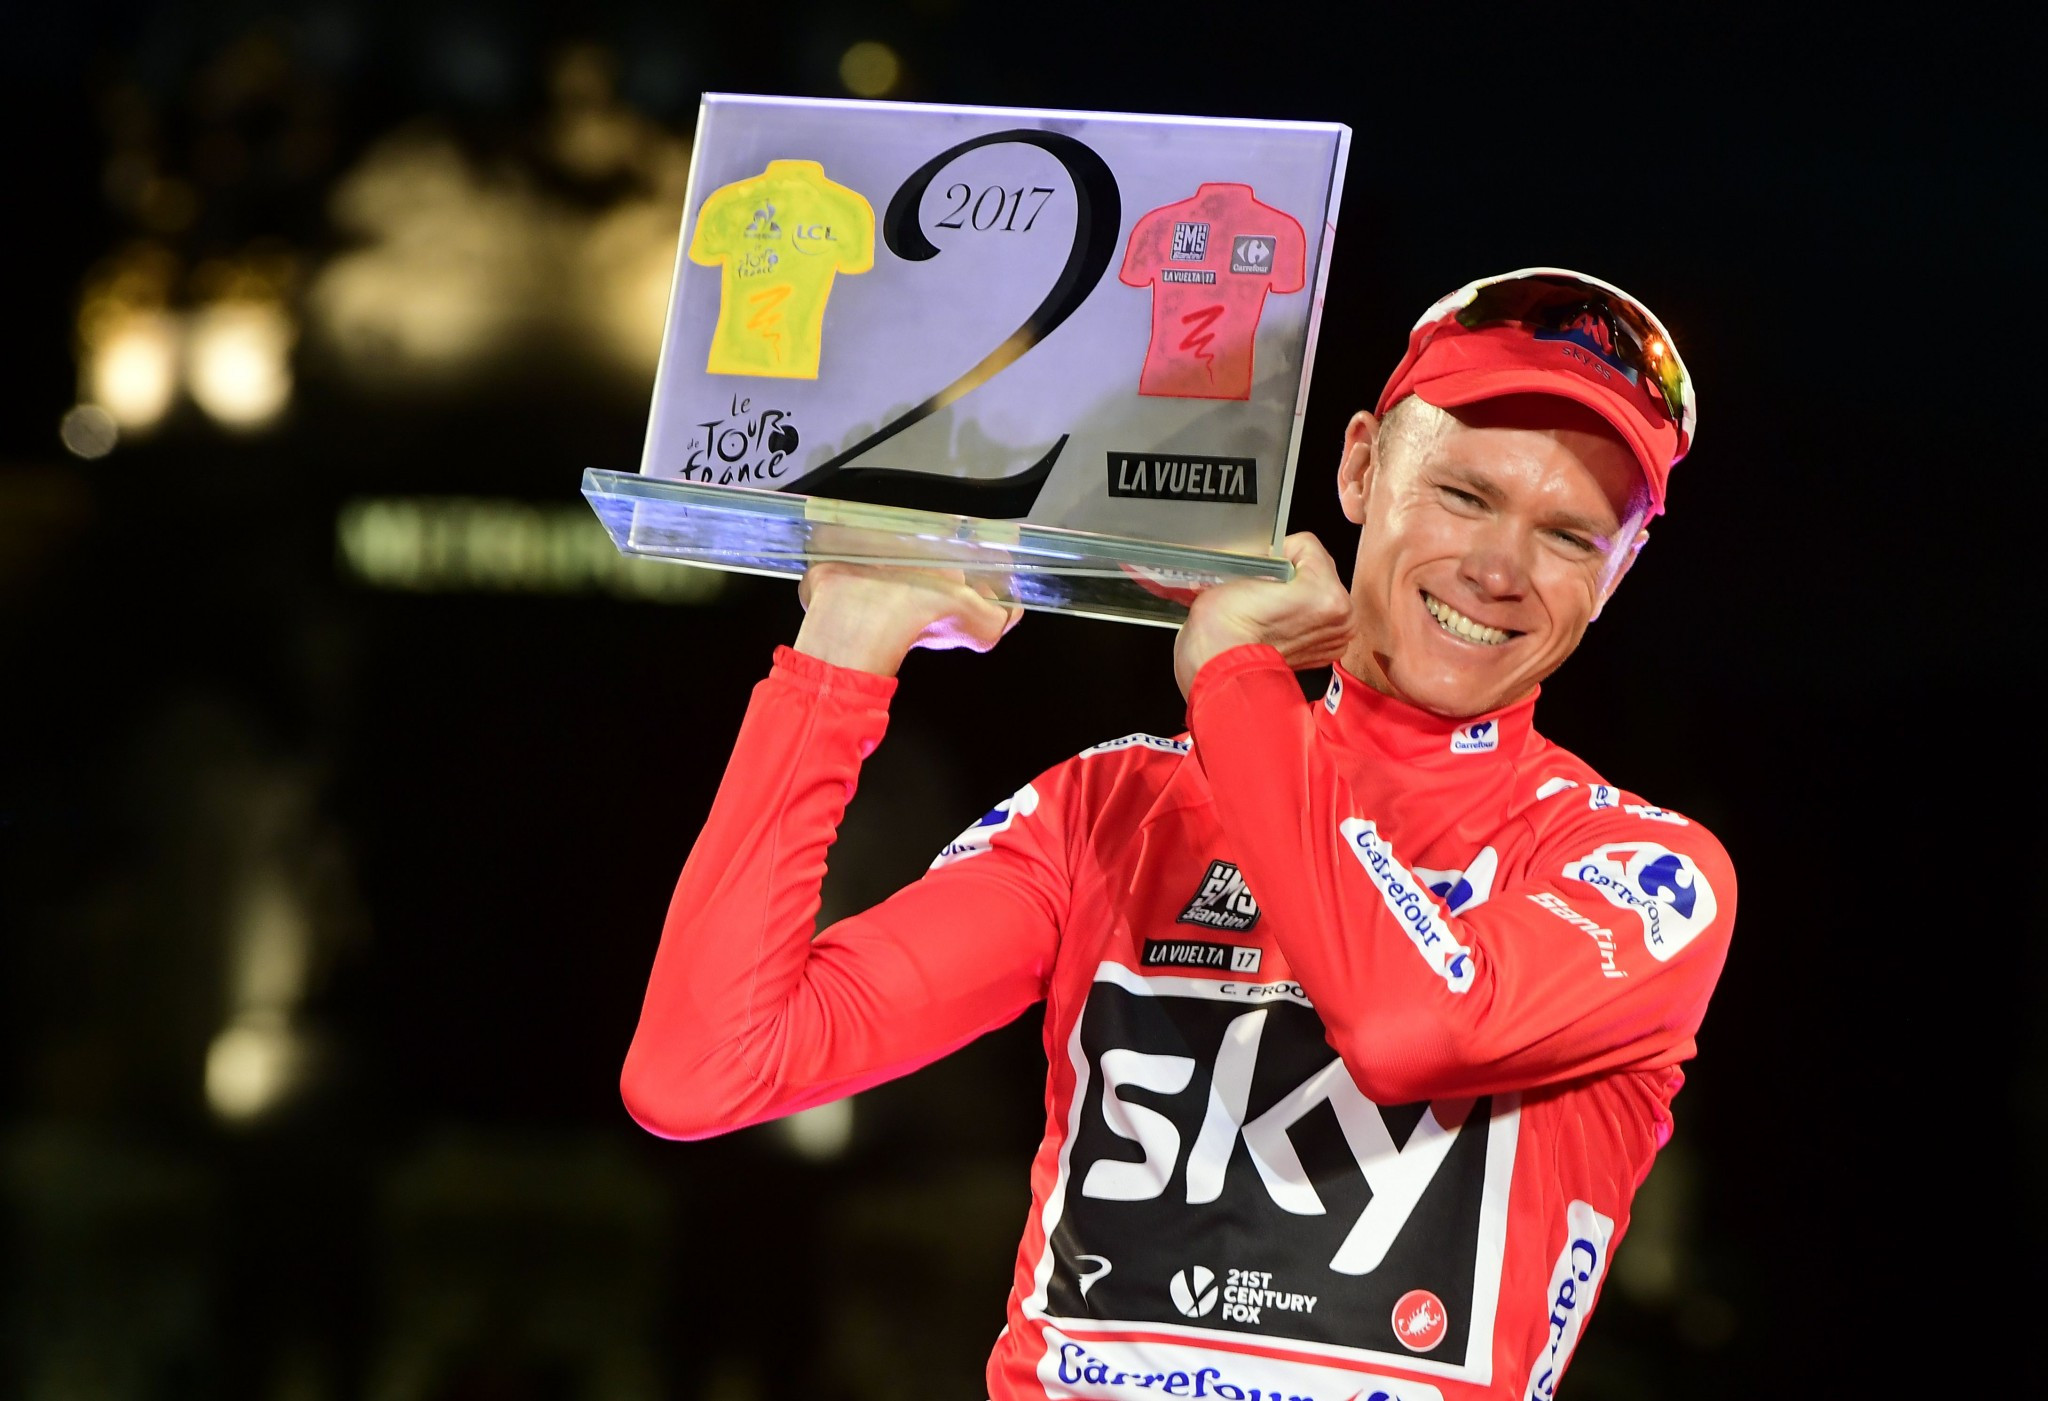 Chris Froome became the third rider to achieve the Tour de France and Vuelta a Espana double ©Getty Images